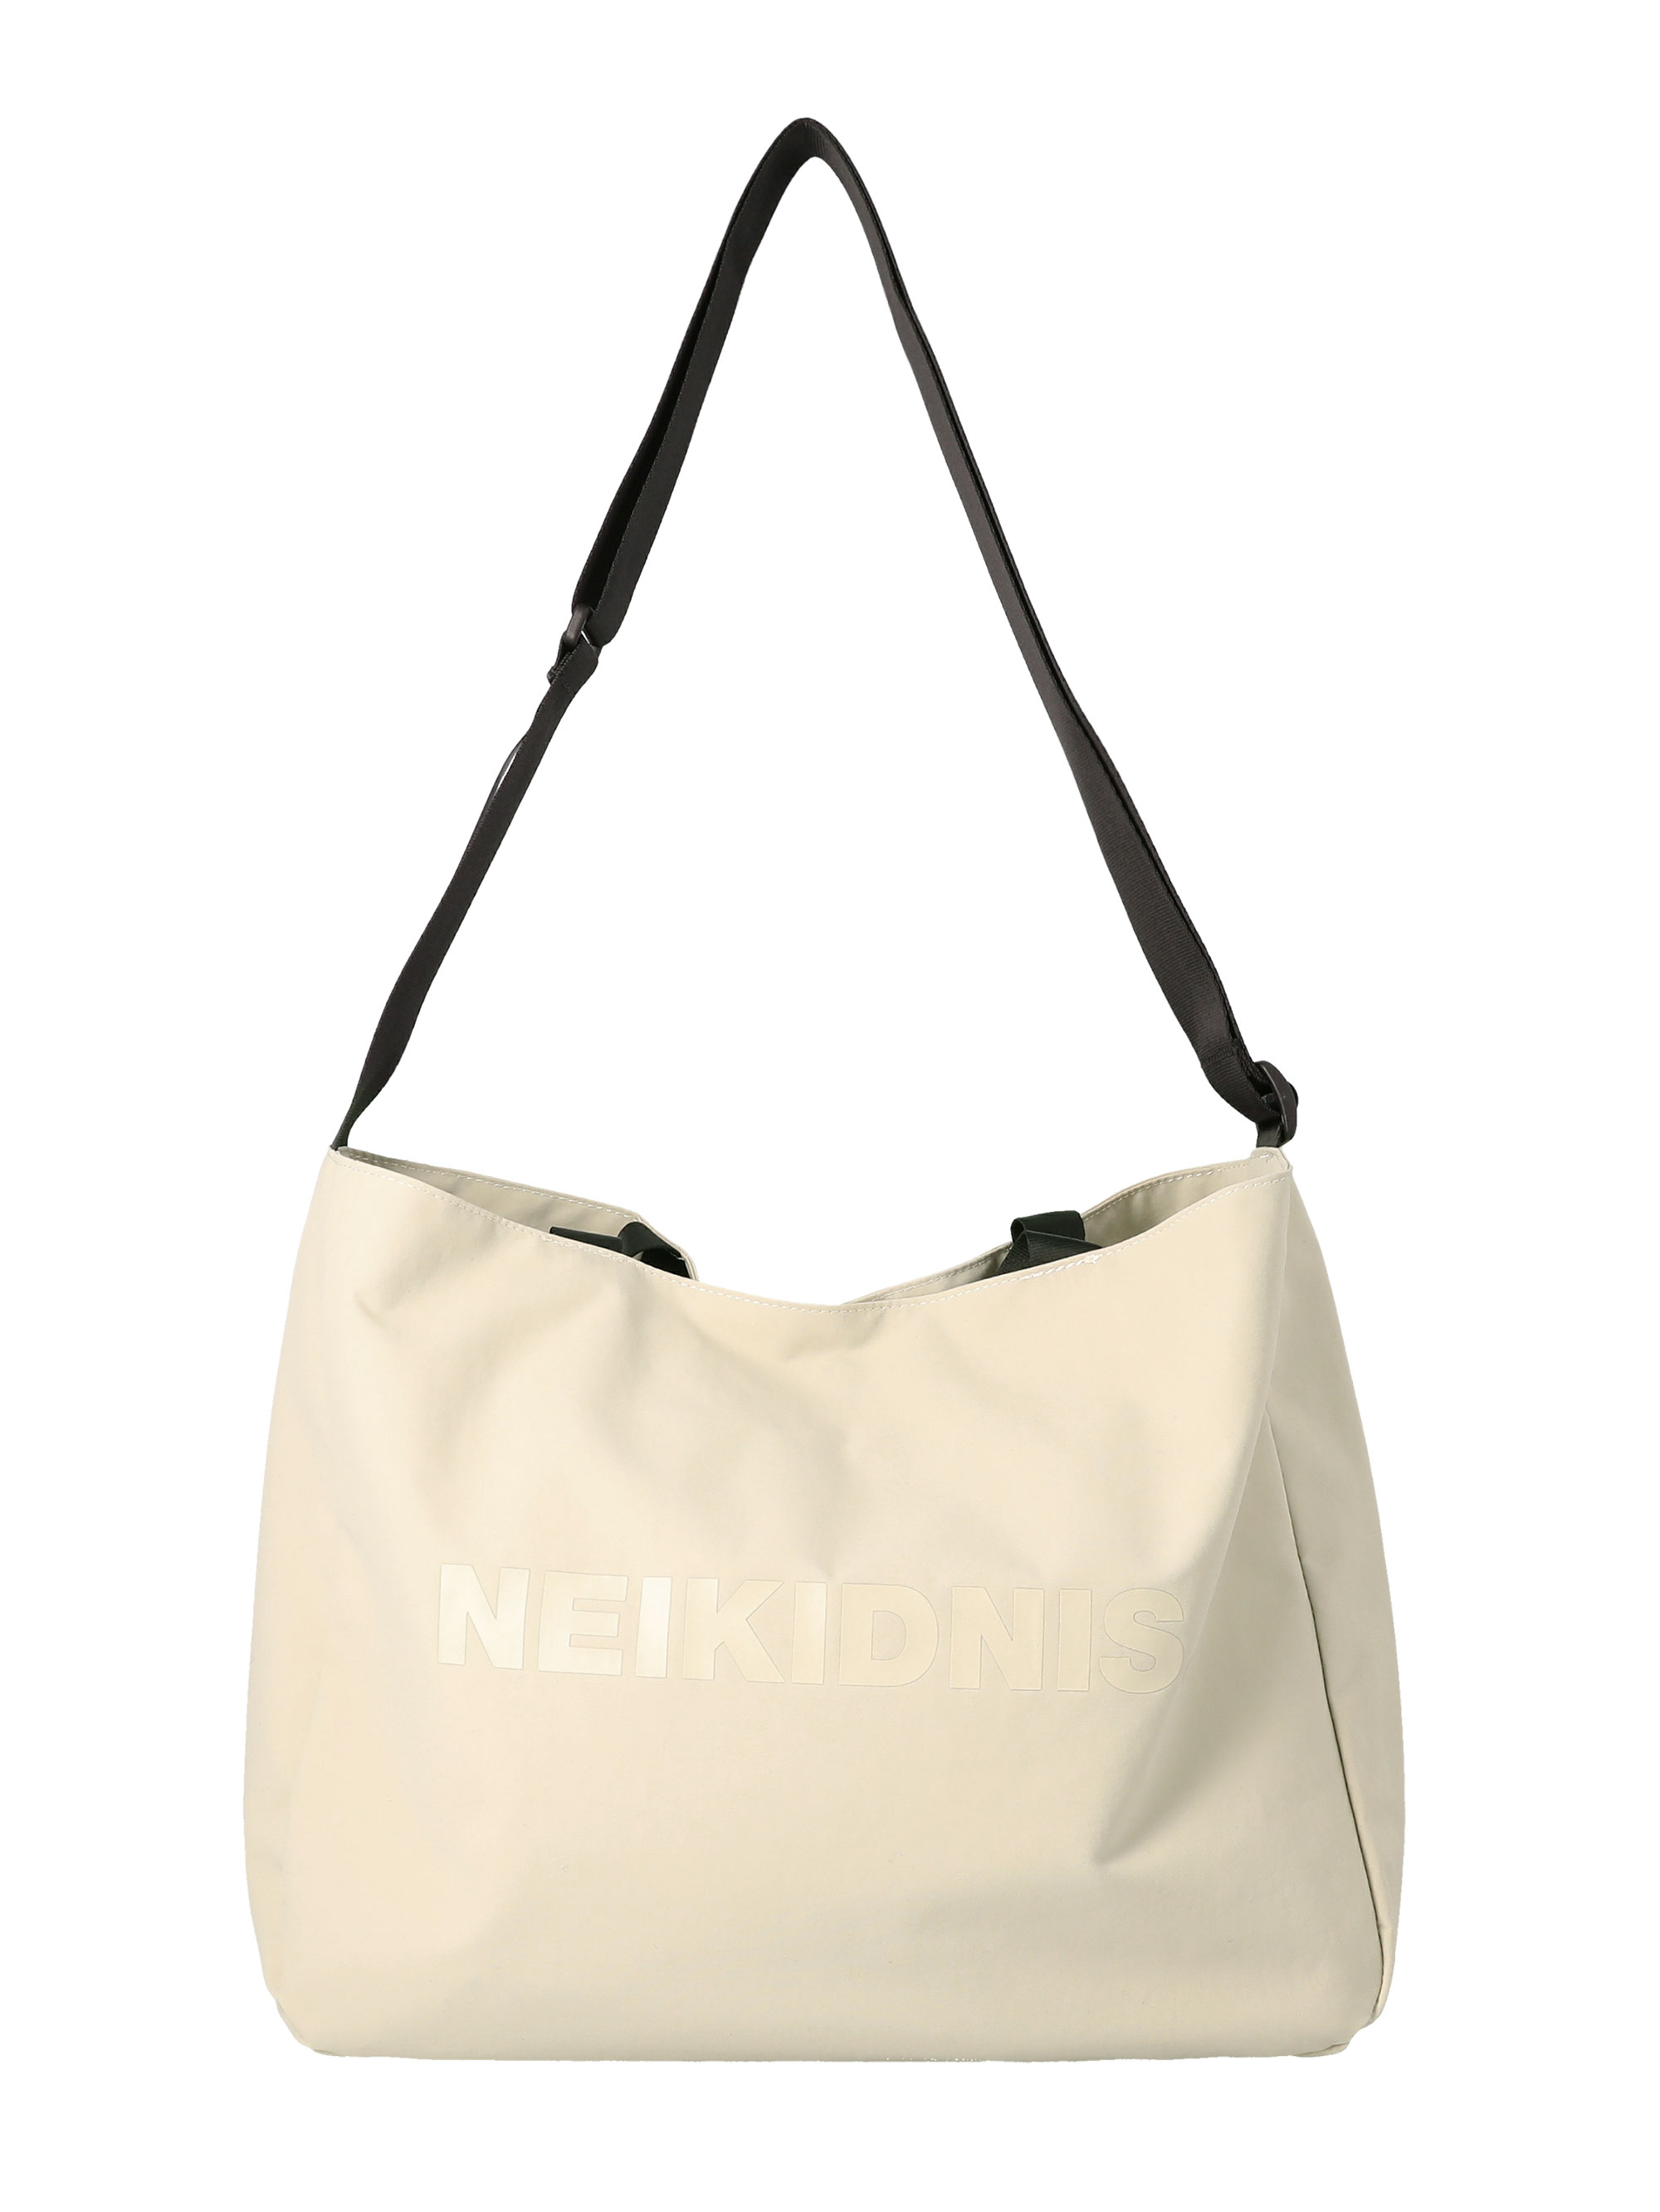 LIGHT WEIGHT 2WAY BAG / BEIGE